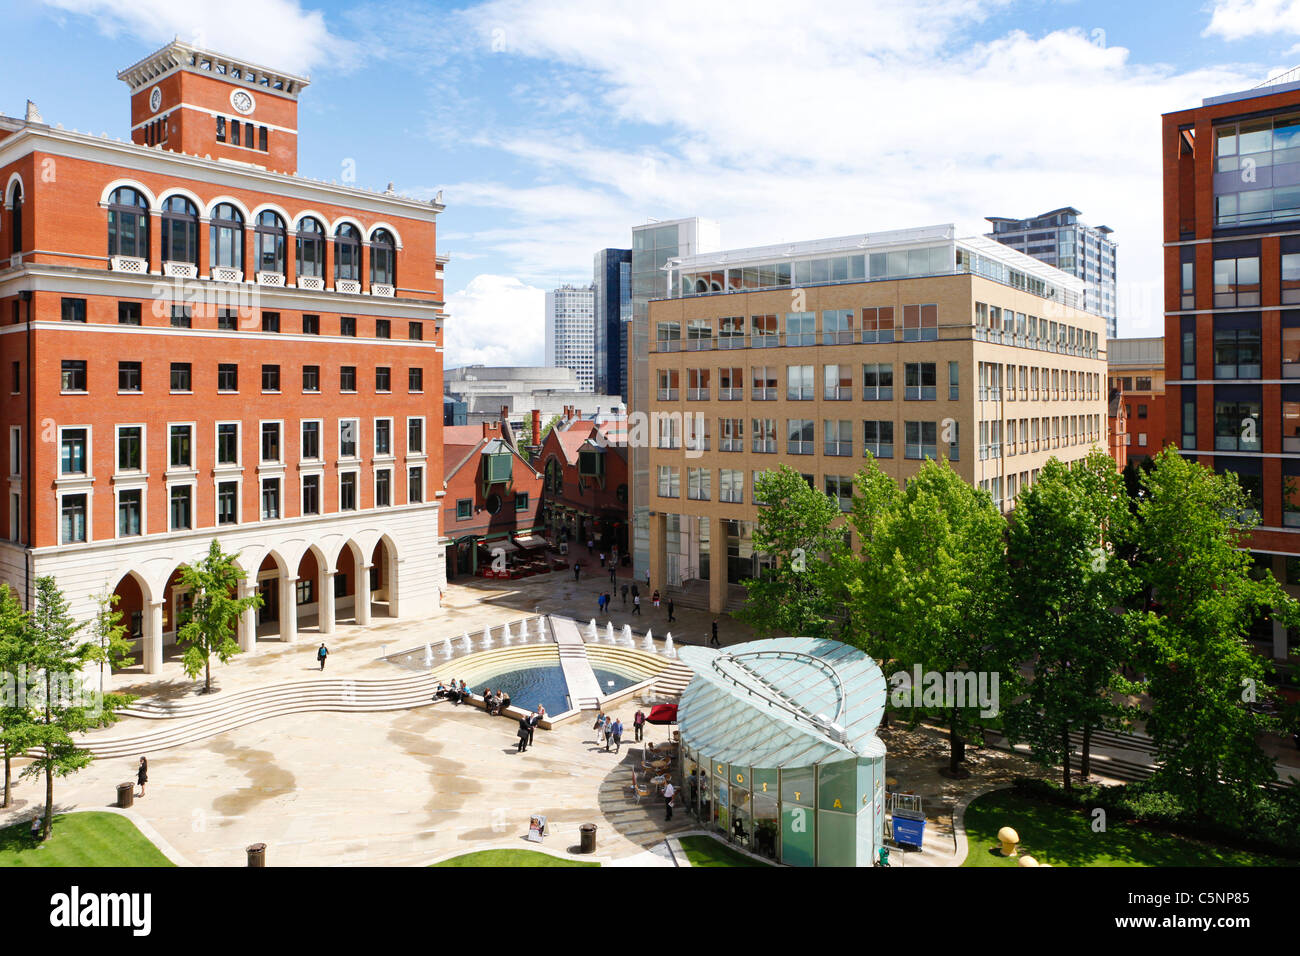 Central Square in Brindleyplace, Birmingham, England, UK - Stock Image